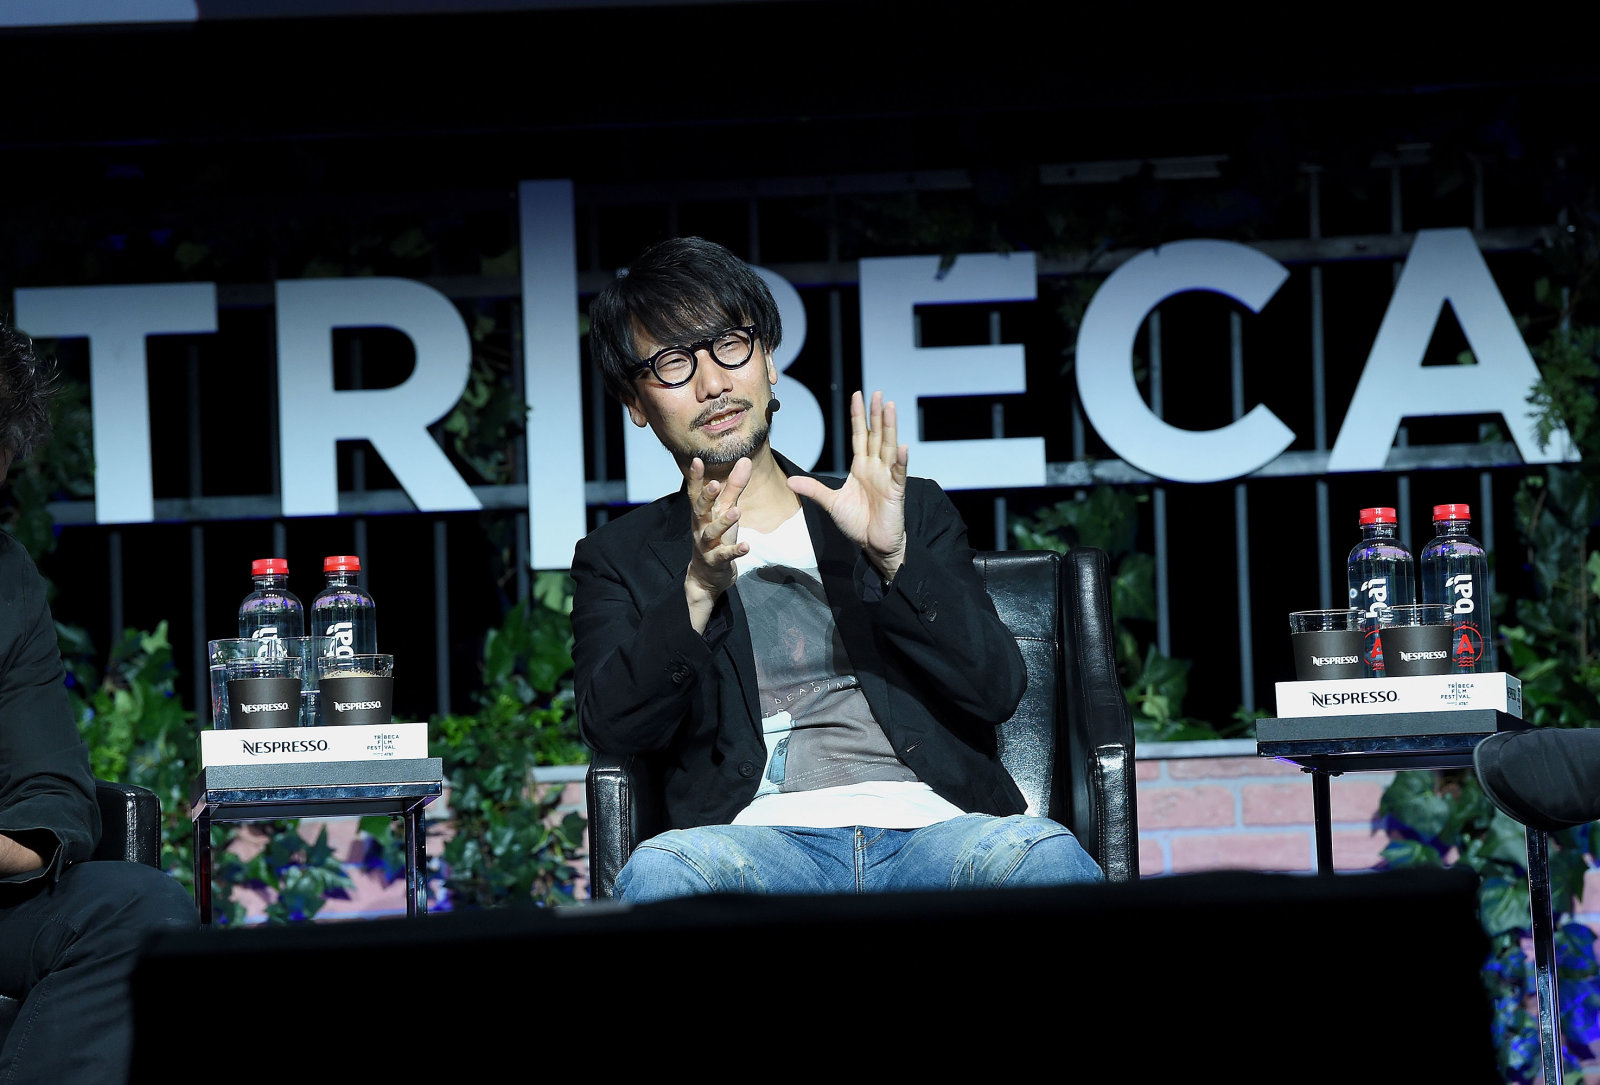 Tribeca Games Festival 2017: Here's What Hideo Kojima Had To Say About The VR Industry And 'Death Stranding'